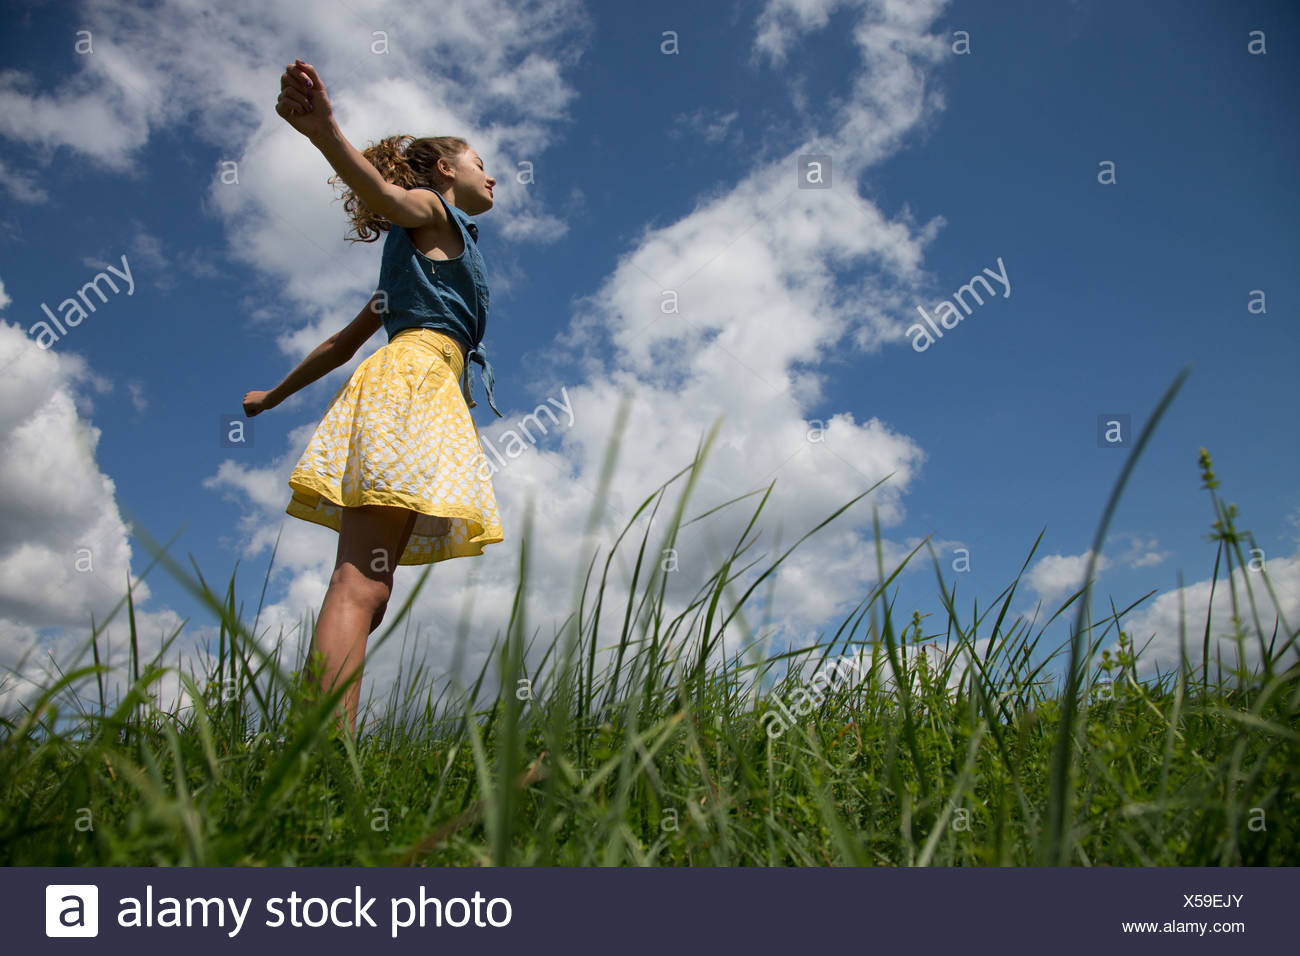 Teenage Girl standing with arms outstretched in field Banque D'Images